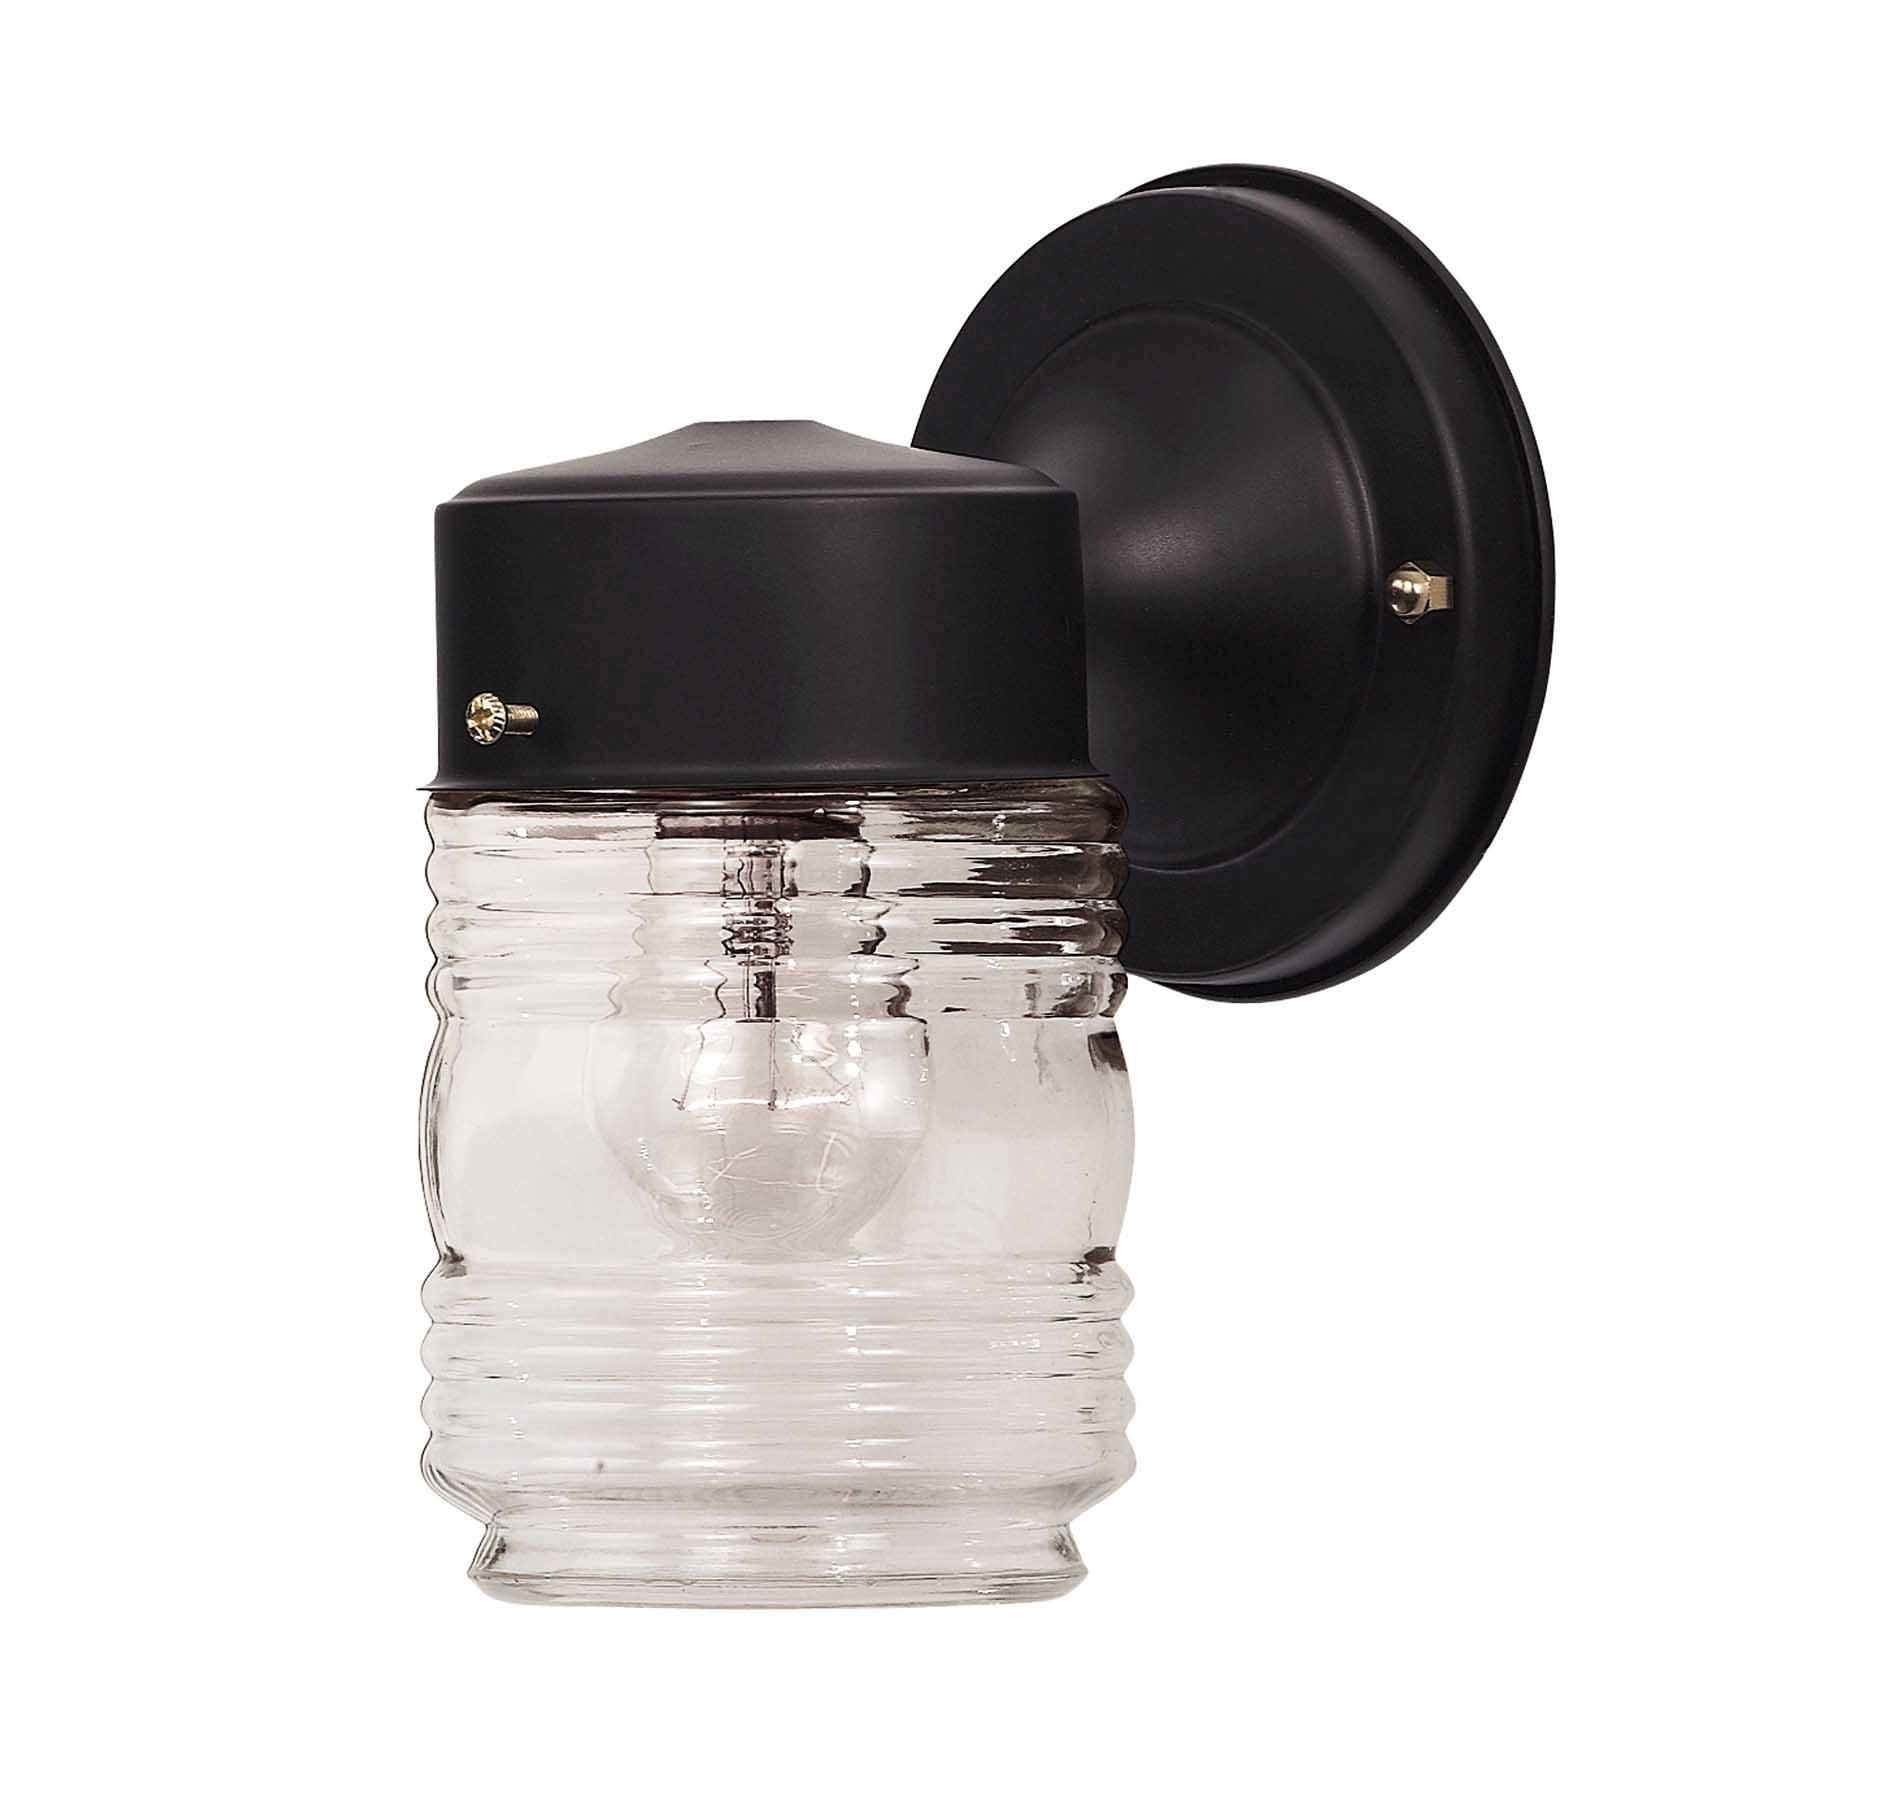 Savoy house 07046 blk exterior collections jelly jar wall mount in savoy house 07046 blk exterior collections jelly jar wall mount in outdoor lights outdoor arubaitofo Gallery